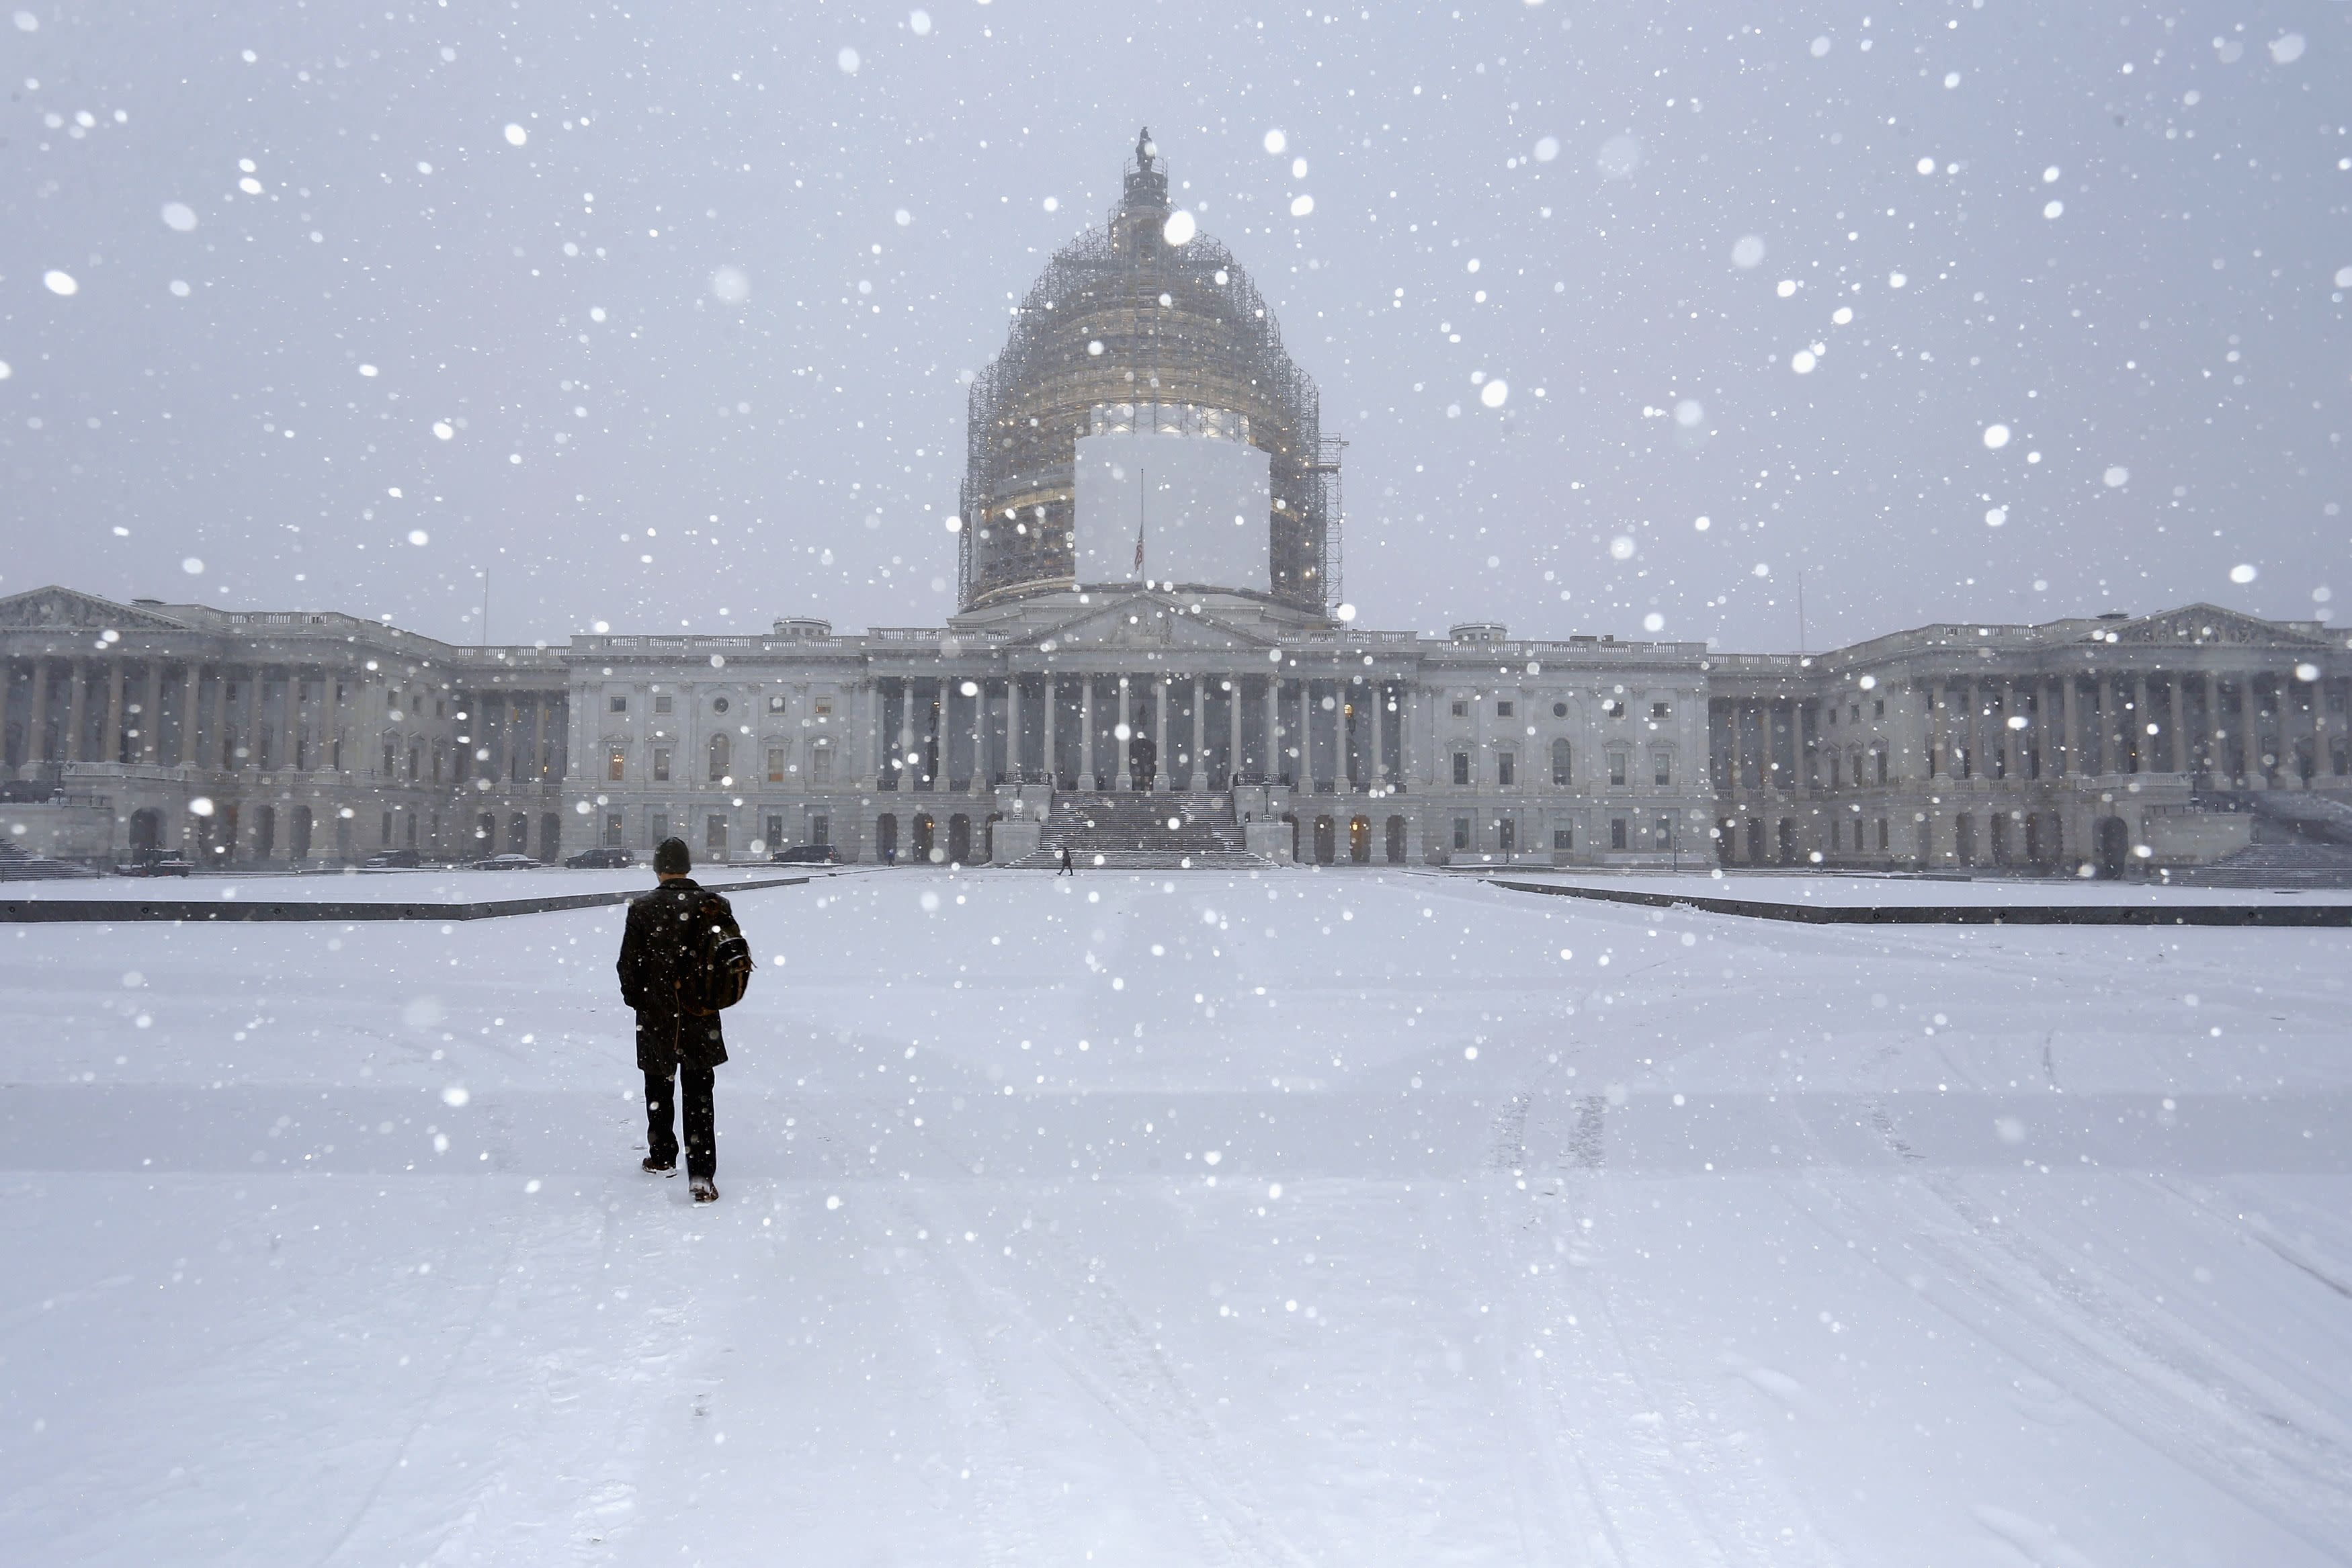 The Snow Doctrine: How cold-state pols prove their mettle in winter-wimpy Washington